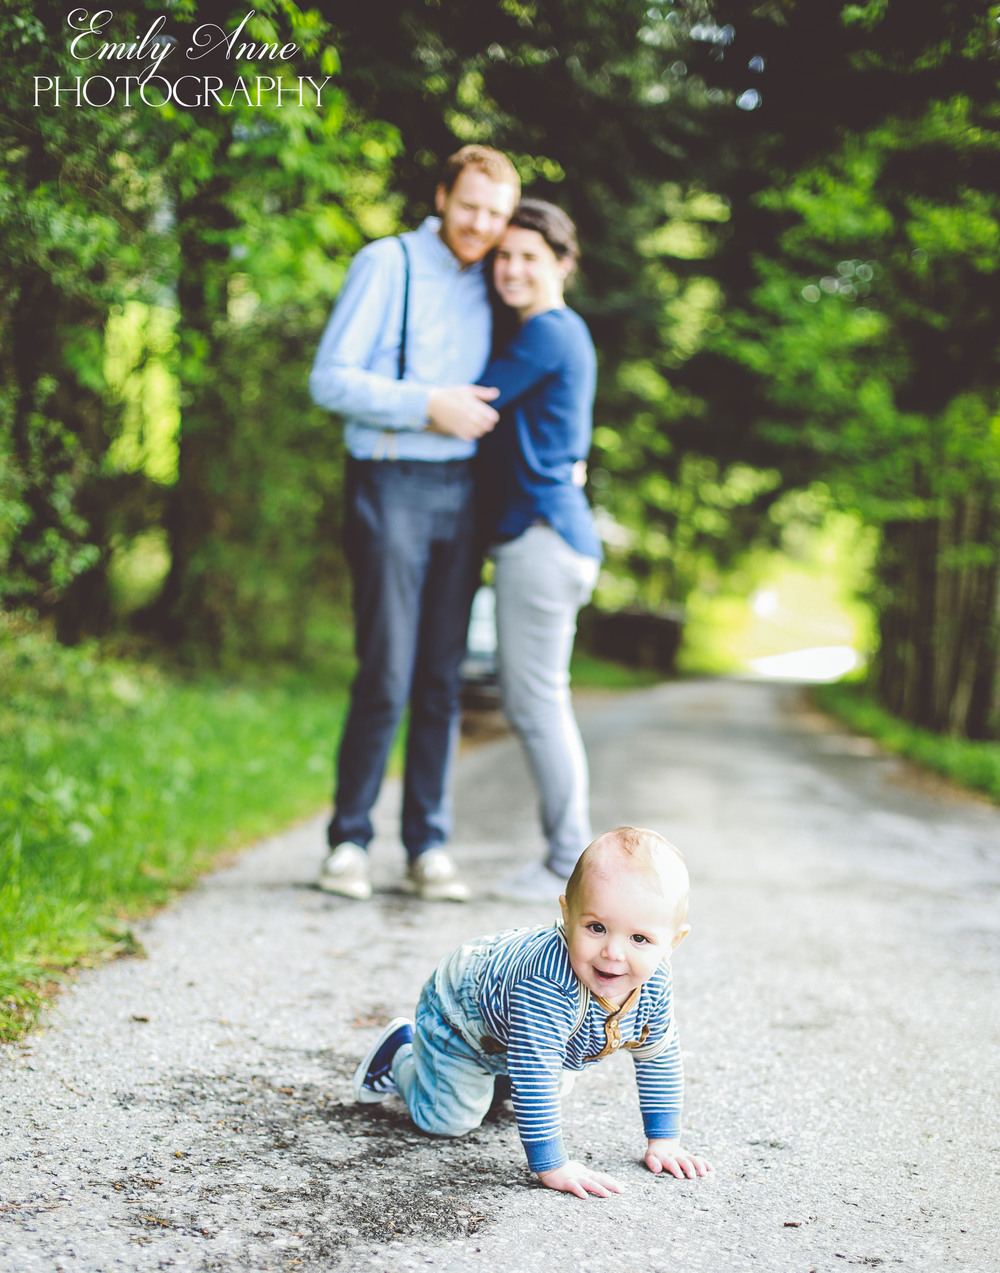 sweet southern tennessee family photos best pinterest photography posing tips for family emily anne international photographer shot in appenzell tiny hands and children nashville tennessee father son photos top swiss photographer shot around nashville area and european countries and switzerland nashville tennessee photographer middle tennessee Franklin family photos harlinsdale pinkerton nashville family portrait affordable photographer emilyannephotoart photography